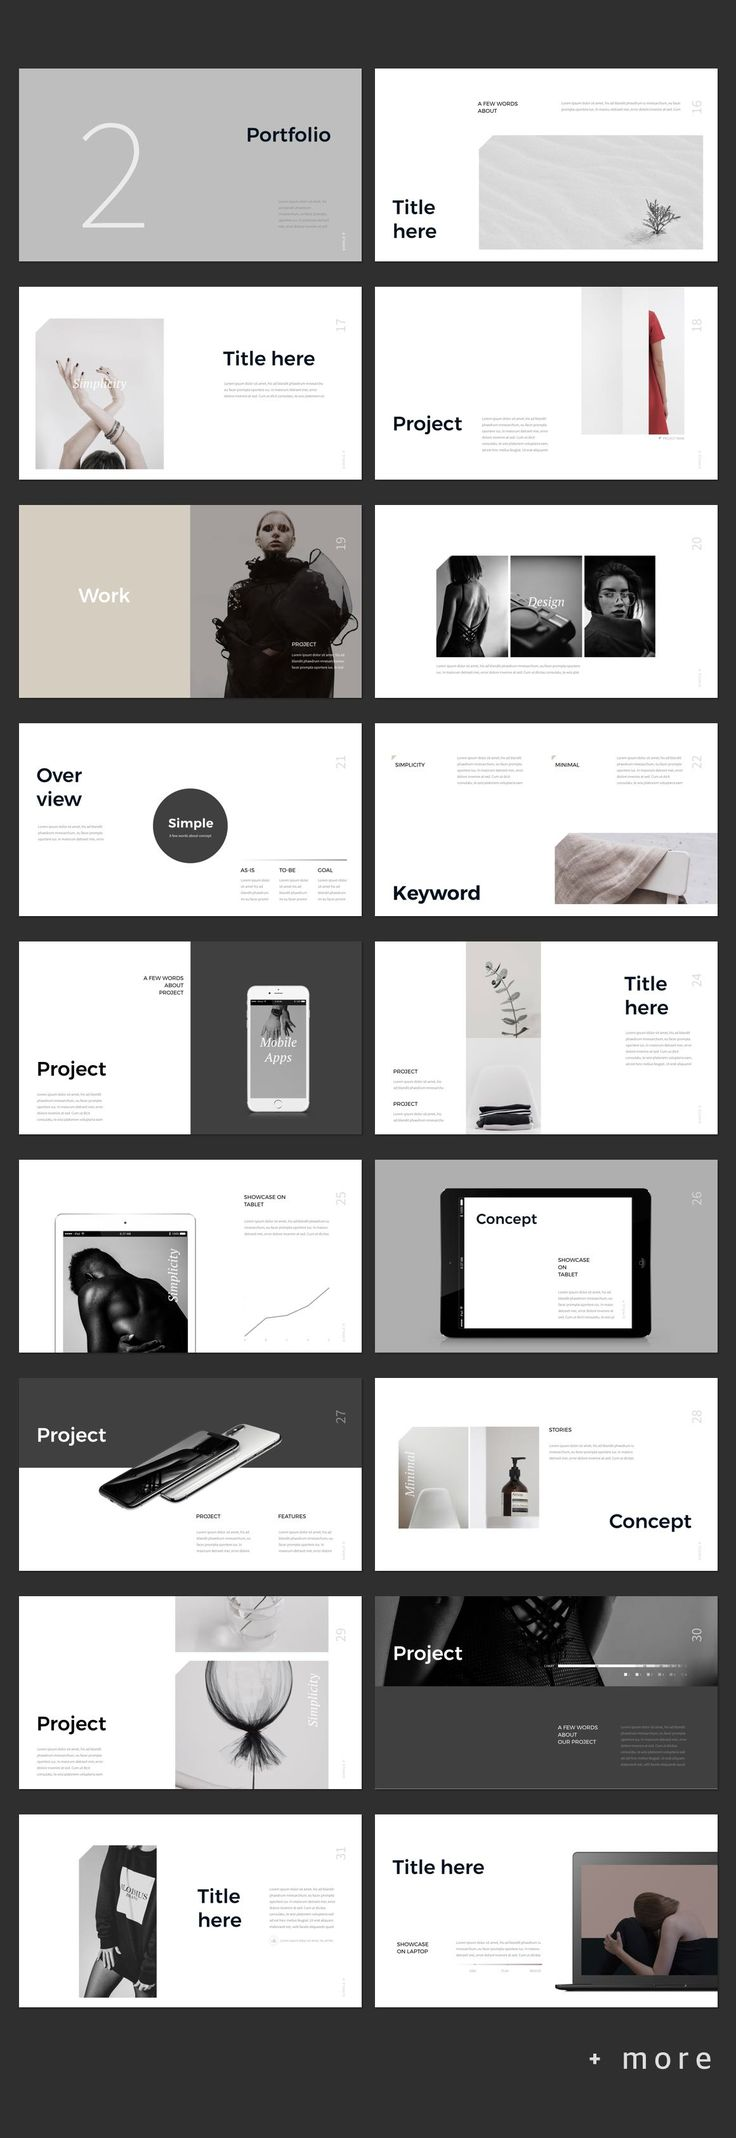 Simple P. Presentation Template #simple #presentation #ppt #template #portfolio #lookbook